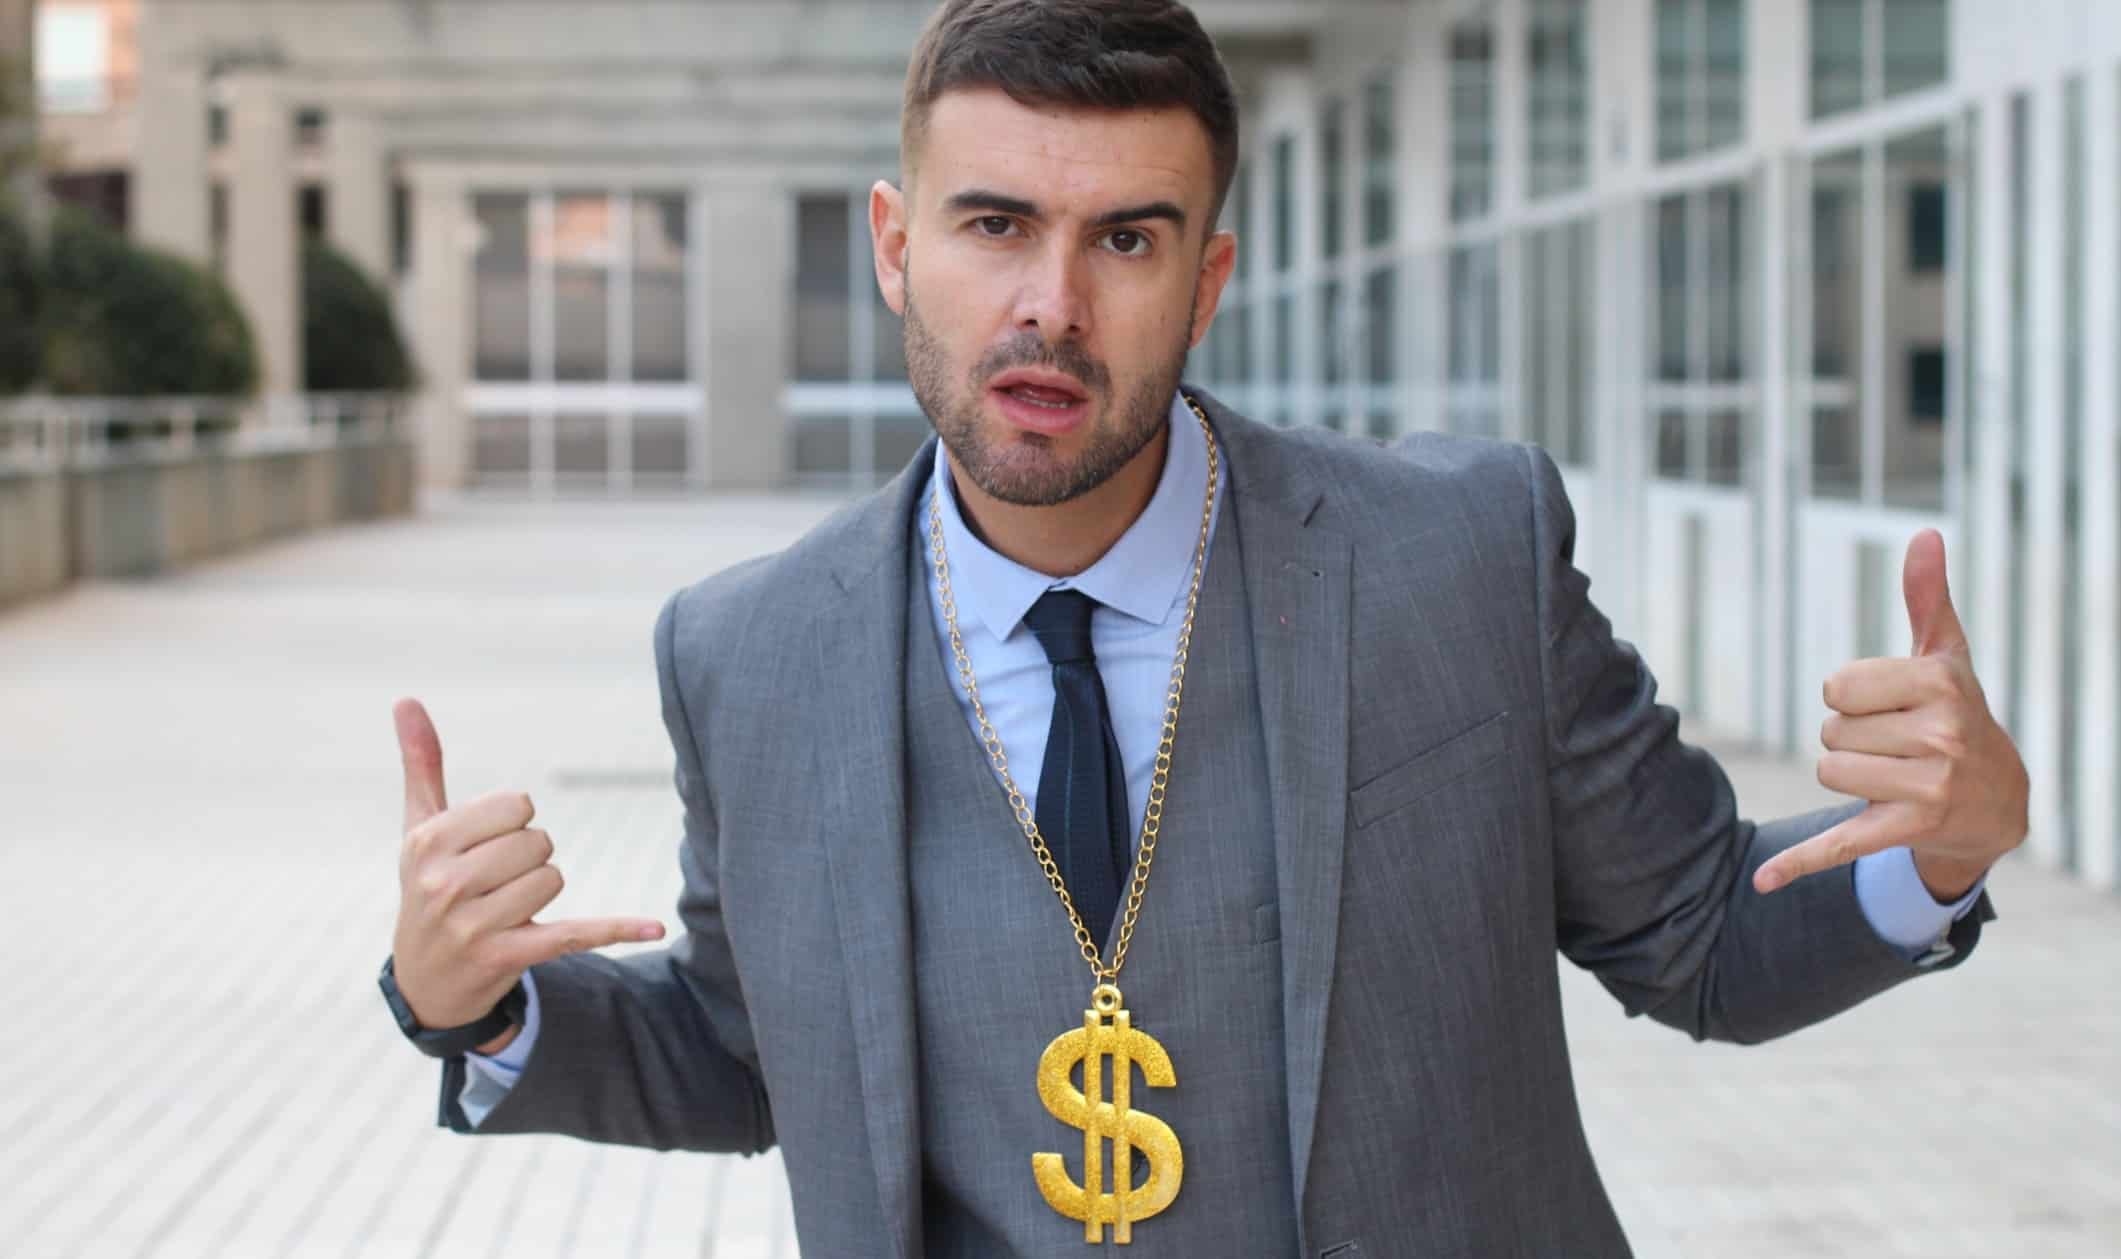 Man in suit with gold chain and attitude happy about making share price gains